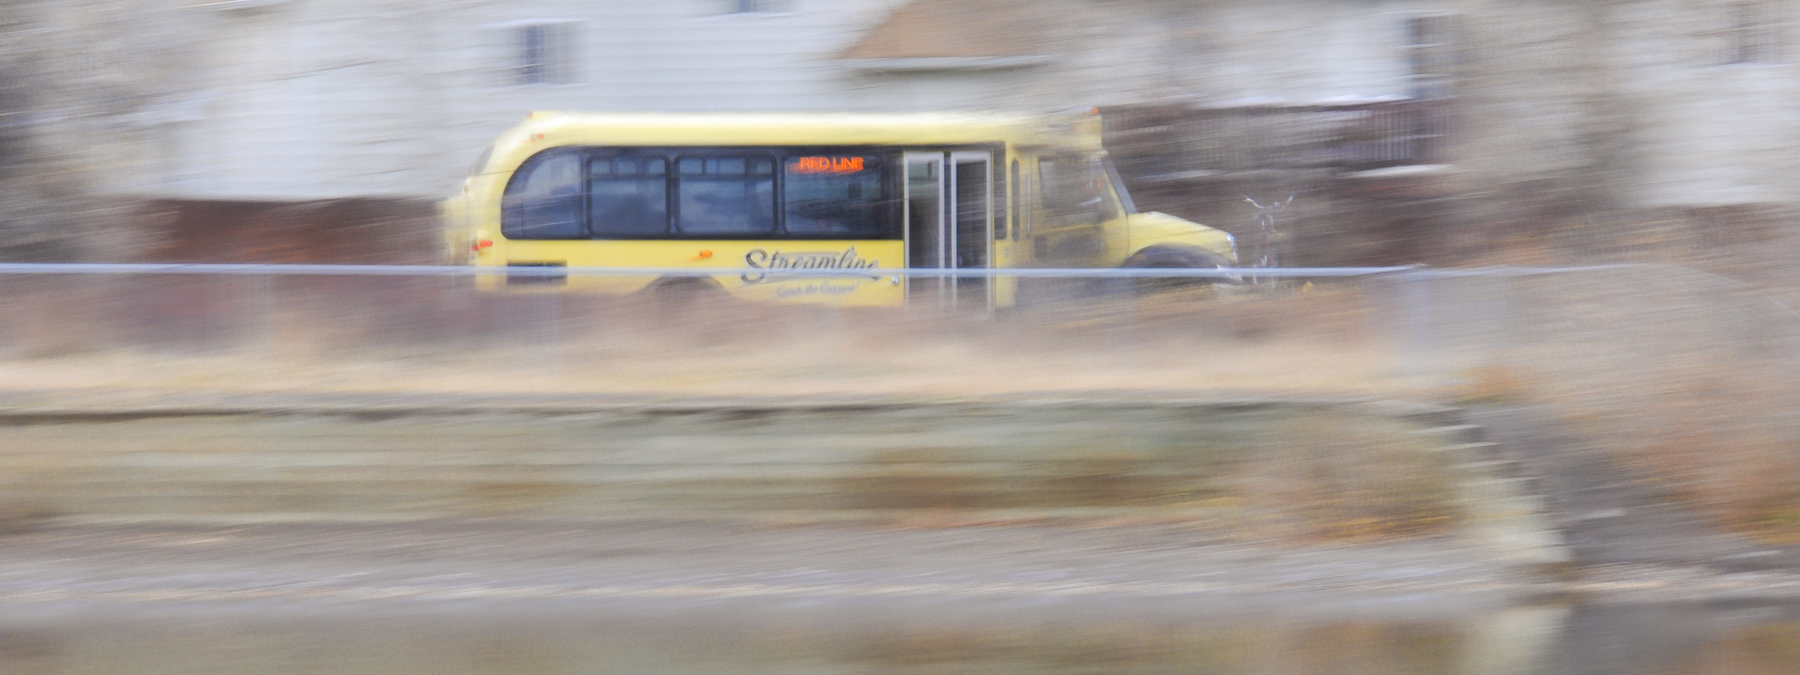 Streamline bus in Bozeman, MT. Motion blur image by Bozeman ponds